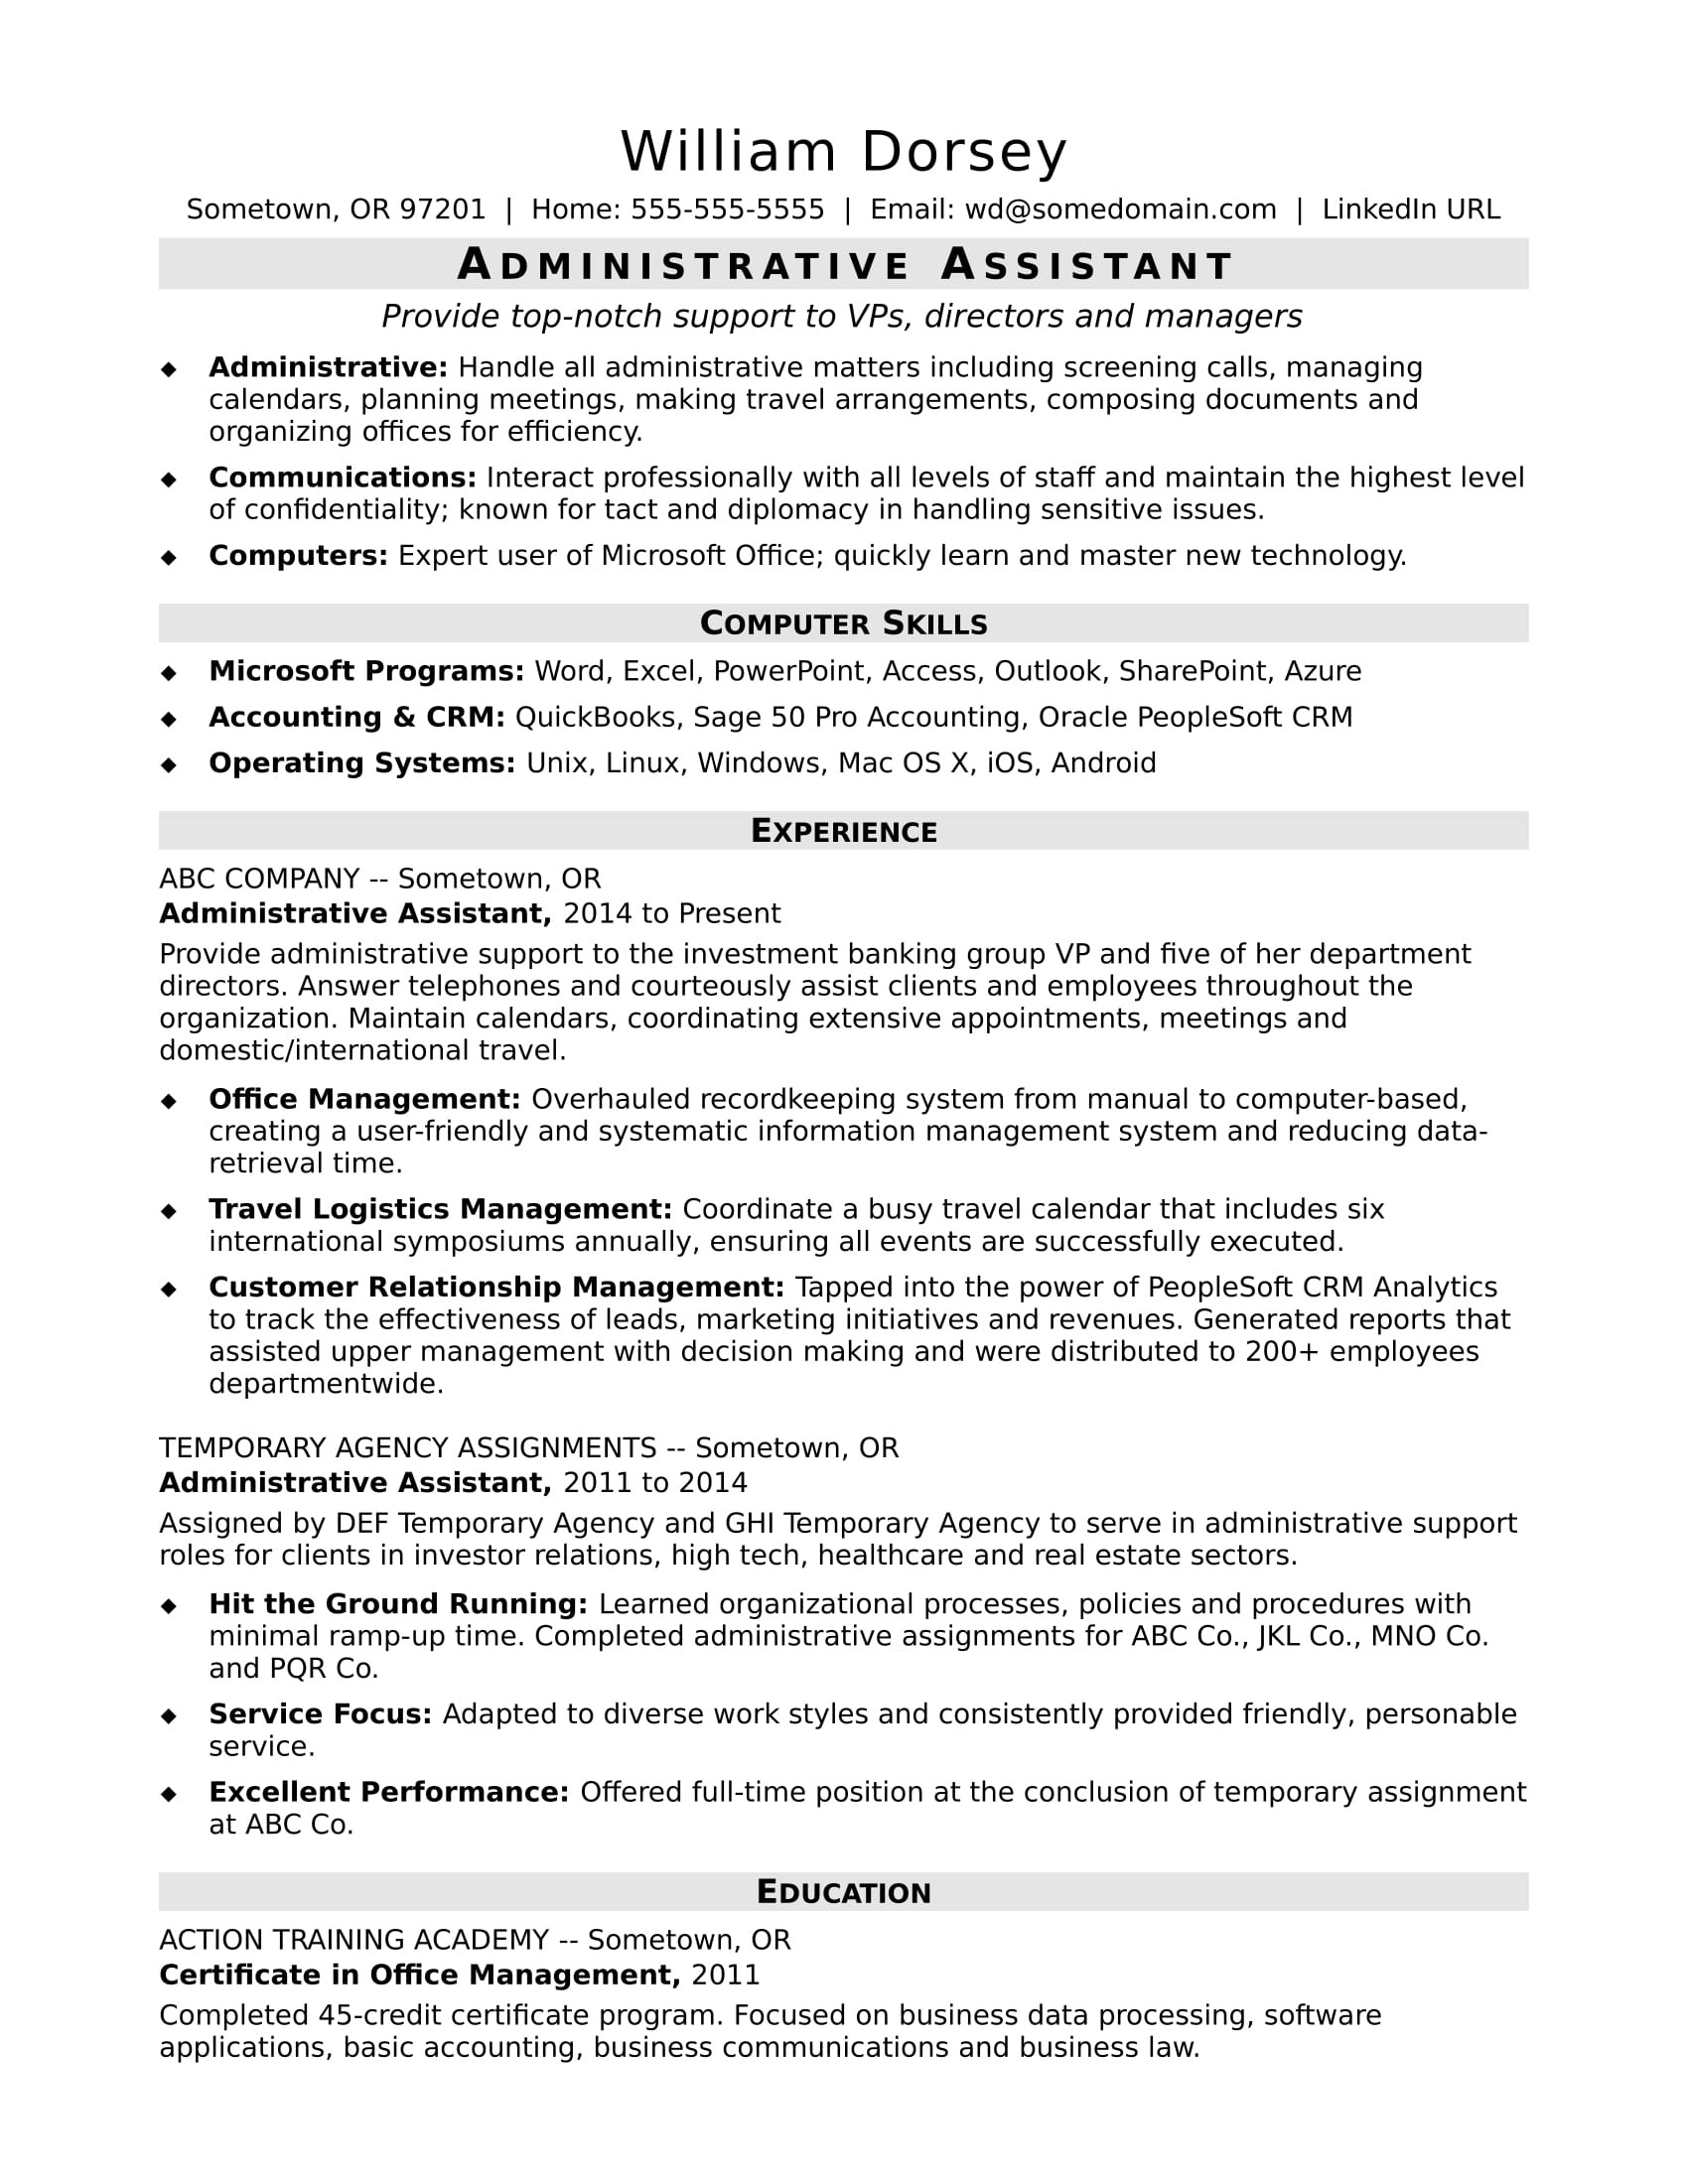 midlevel administrative assistant resume sample monster example of data scientist latex Resume Example Resume Of Administrative Assistant